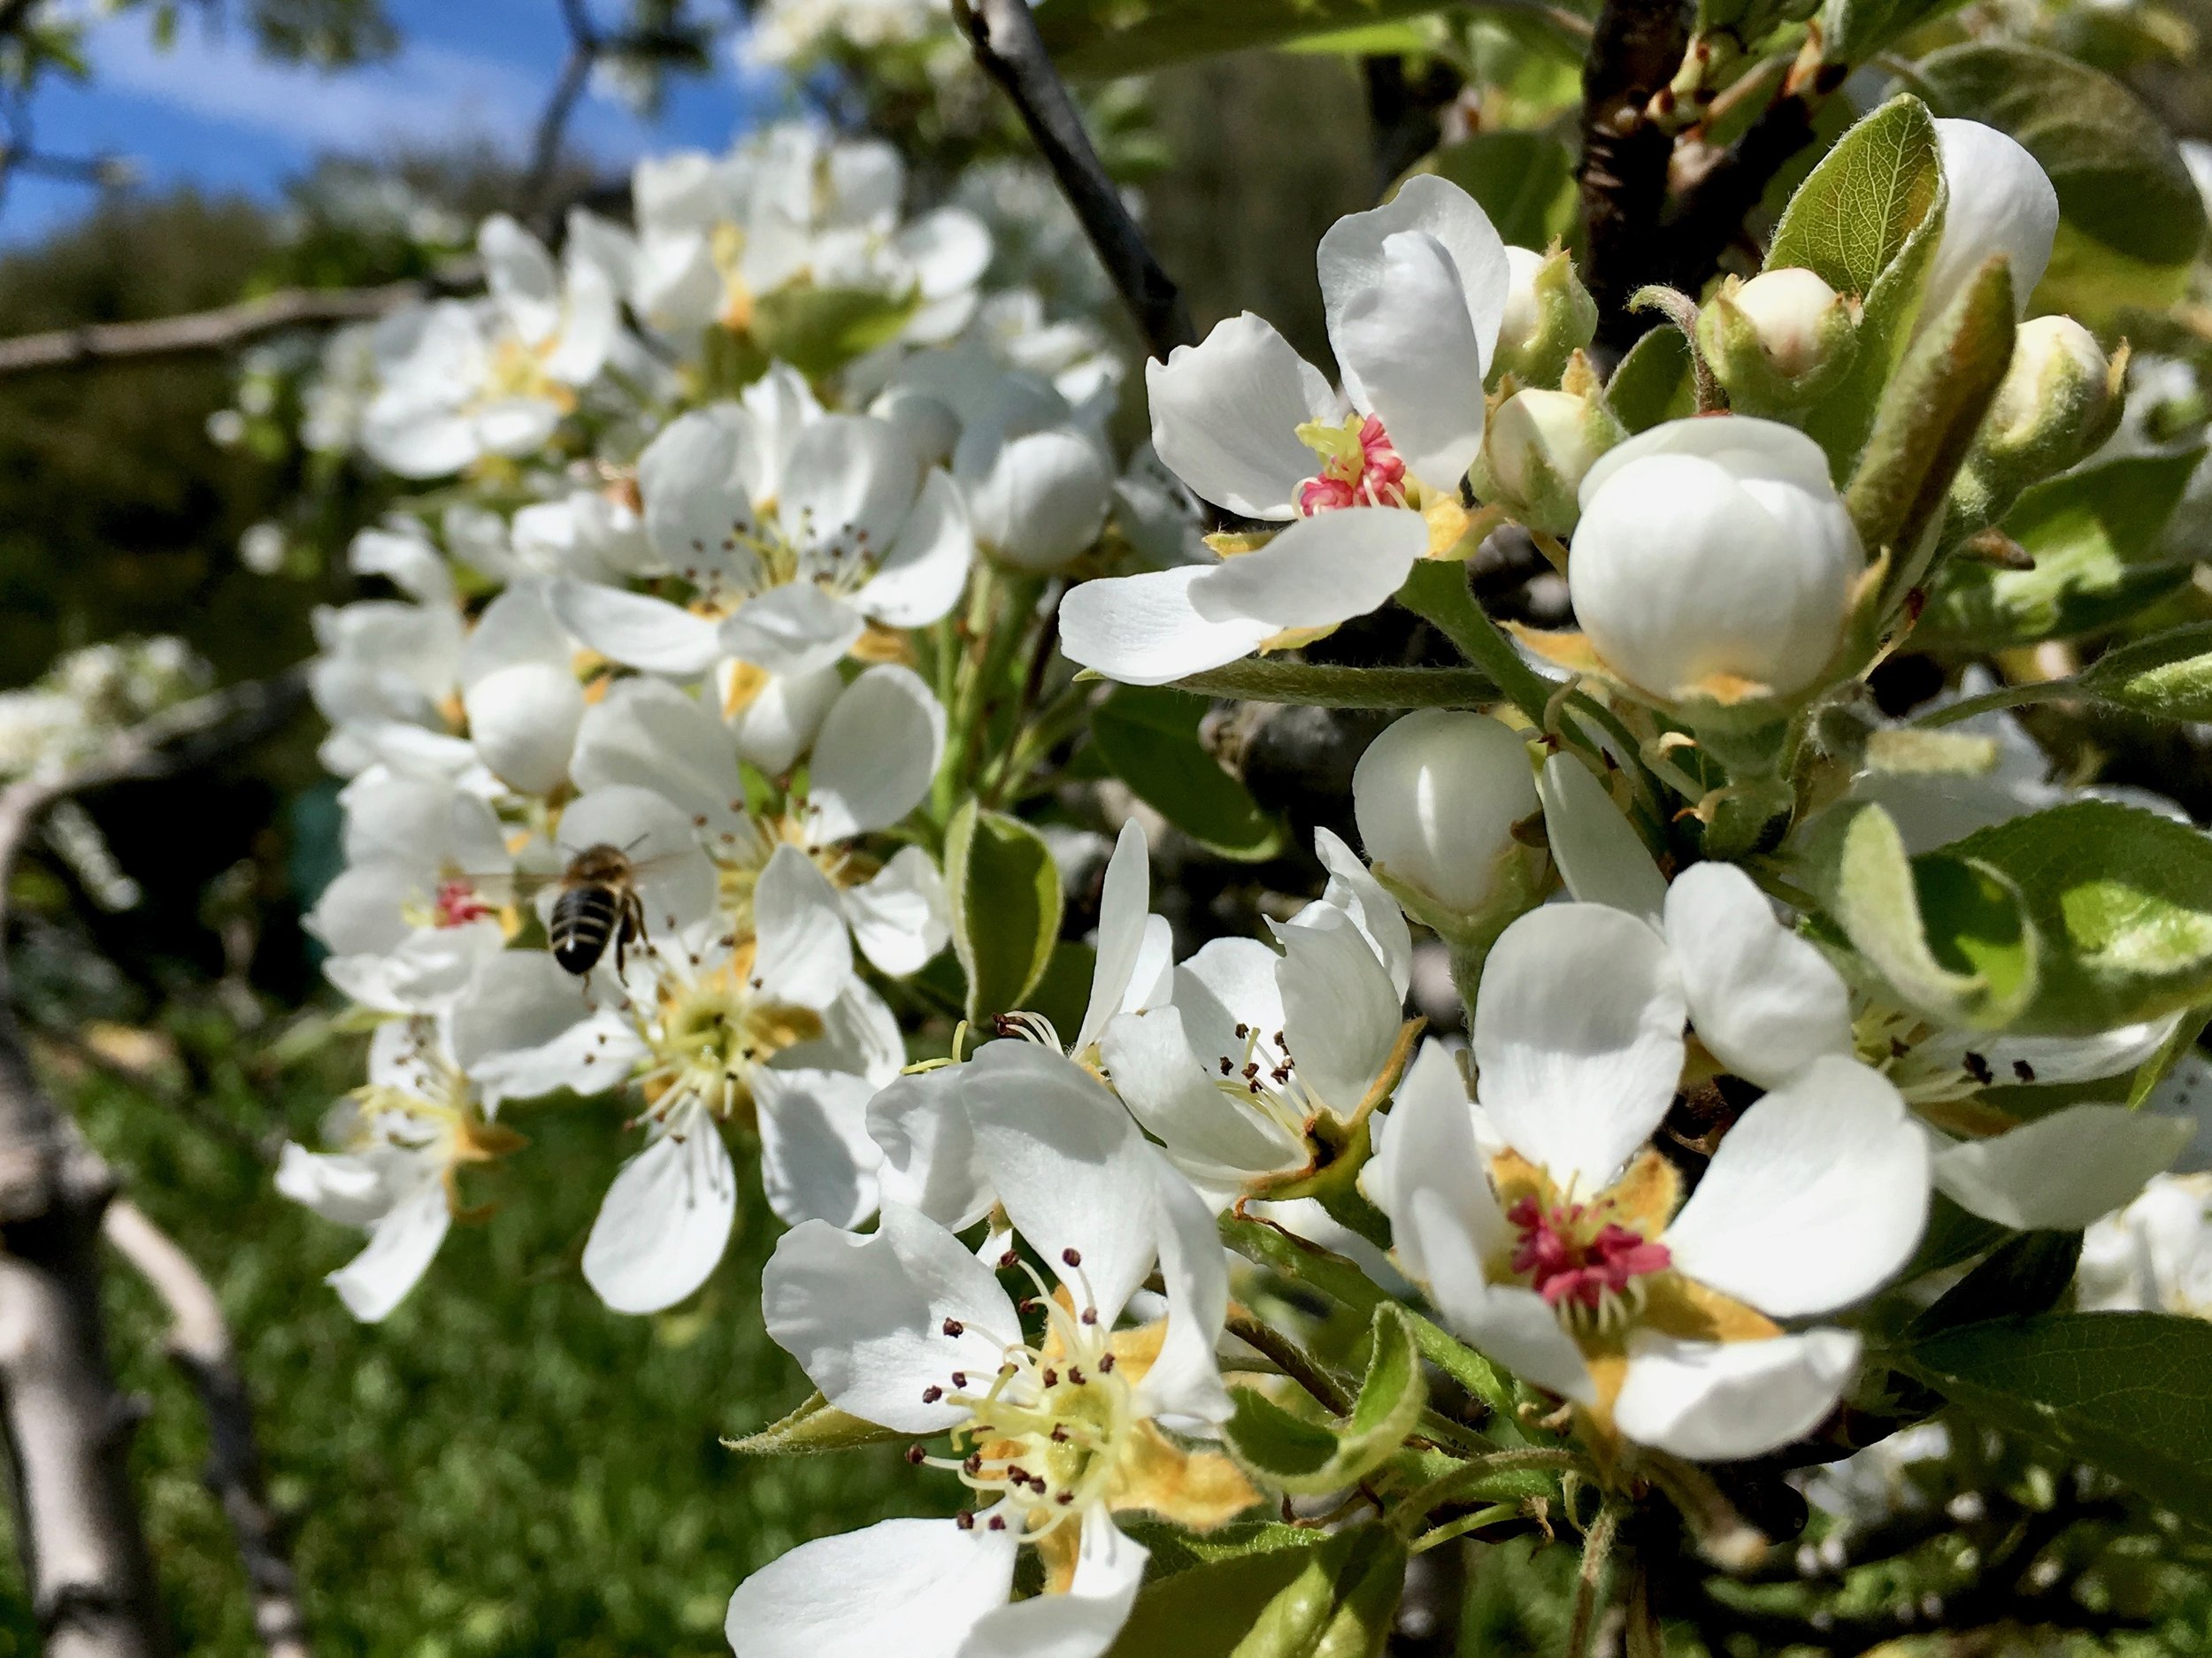 Pear Tree blossoms Oct 2018